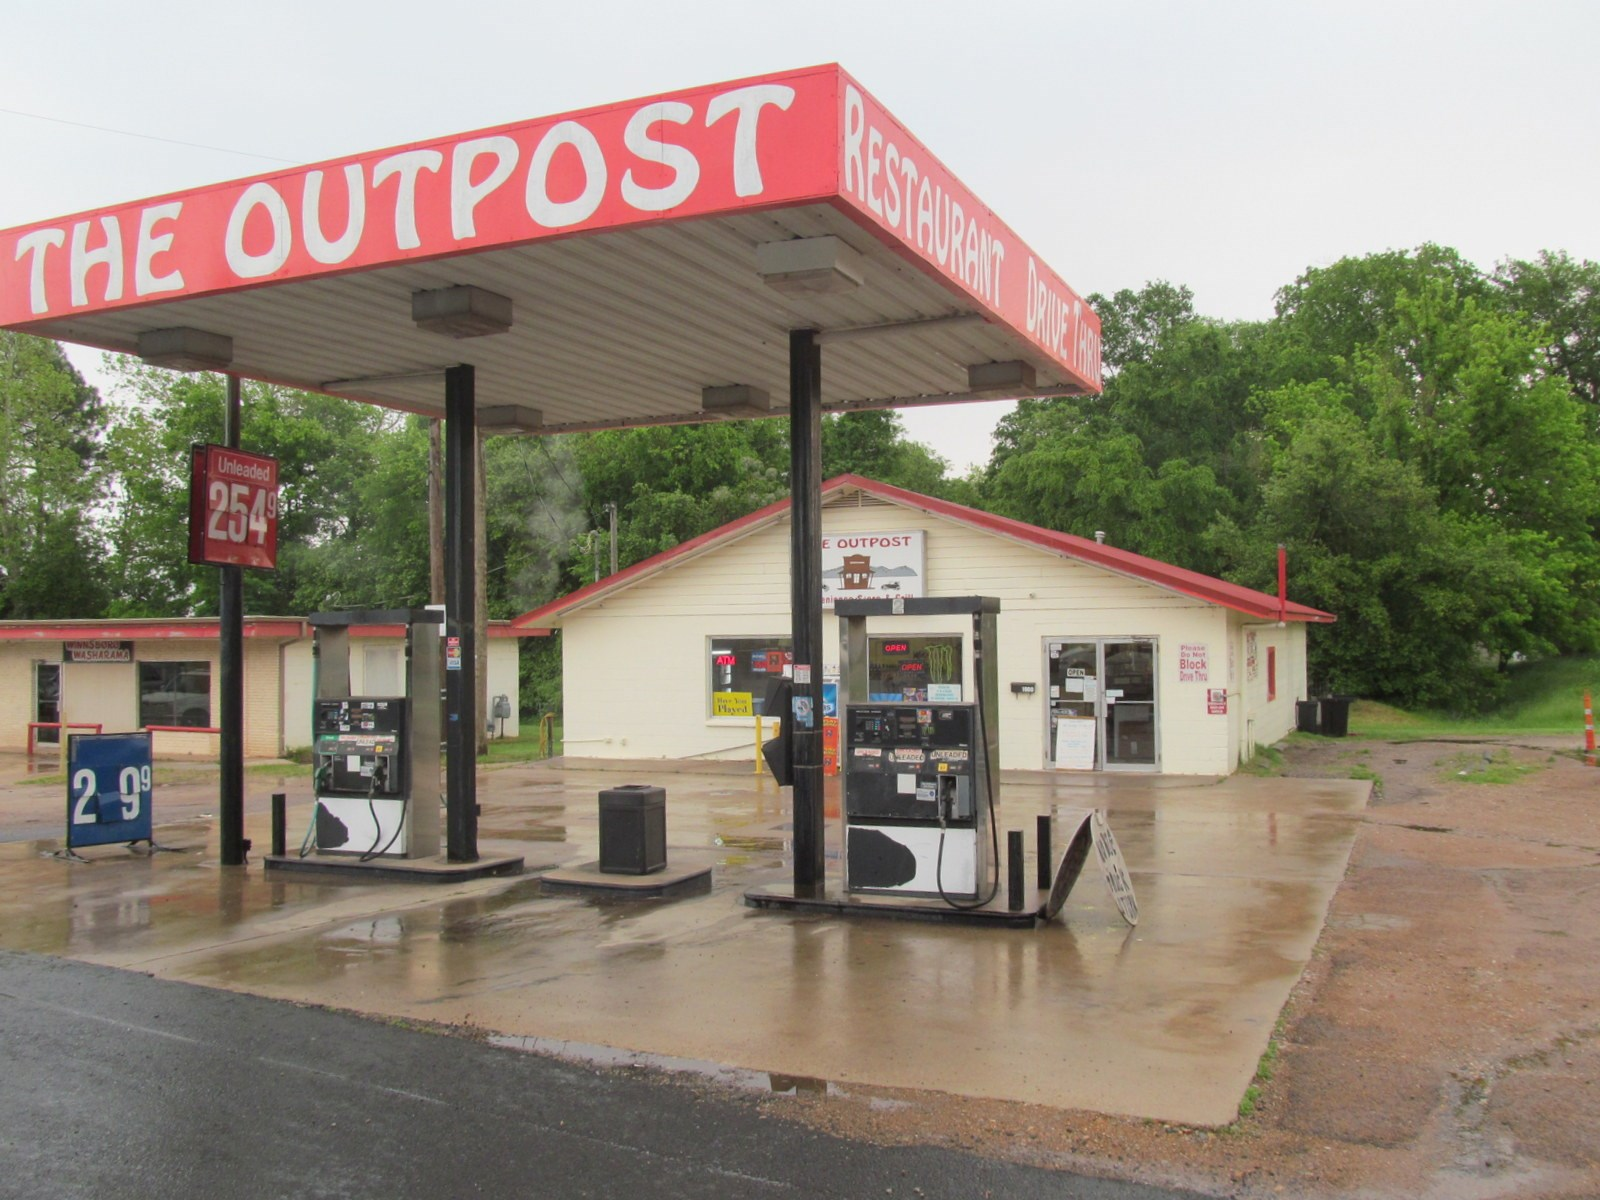 GAS STATION - RESTAURANT - CONVENIENCE STORE - EAST TEXAS